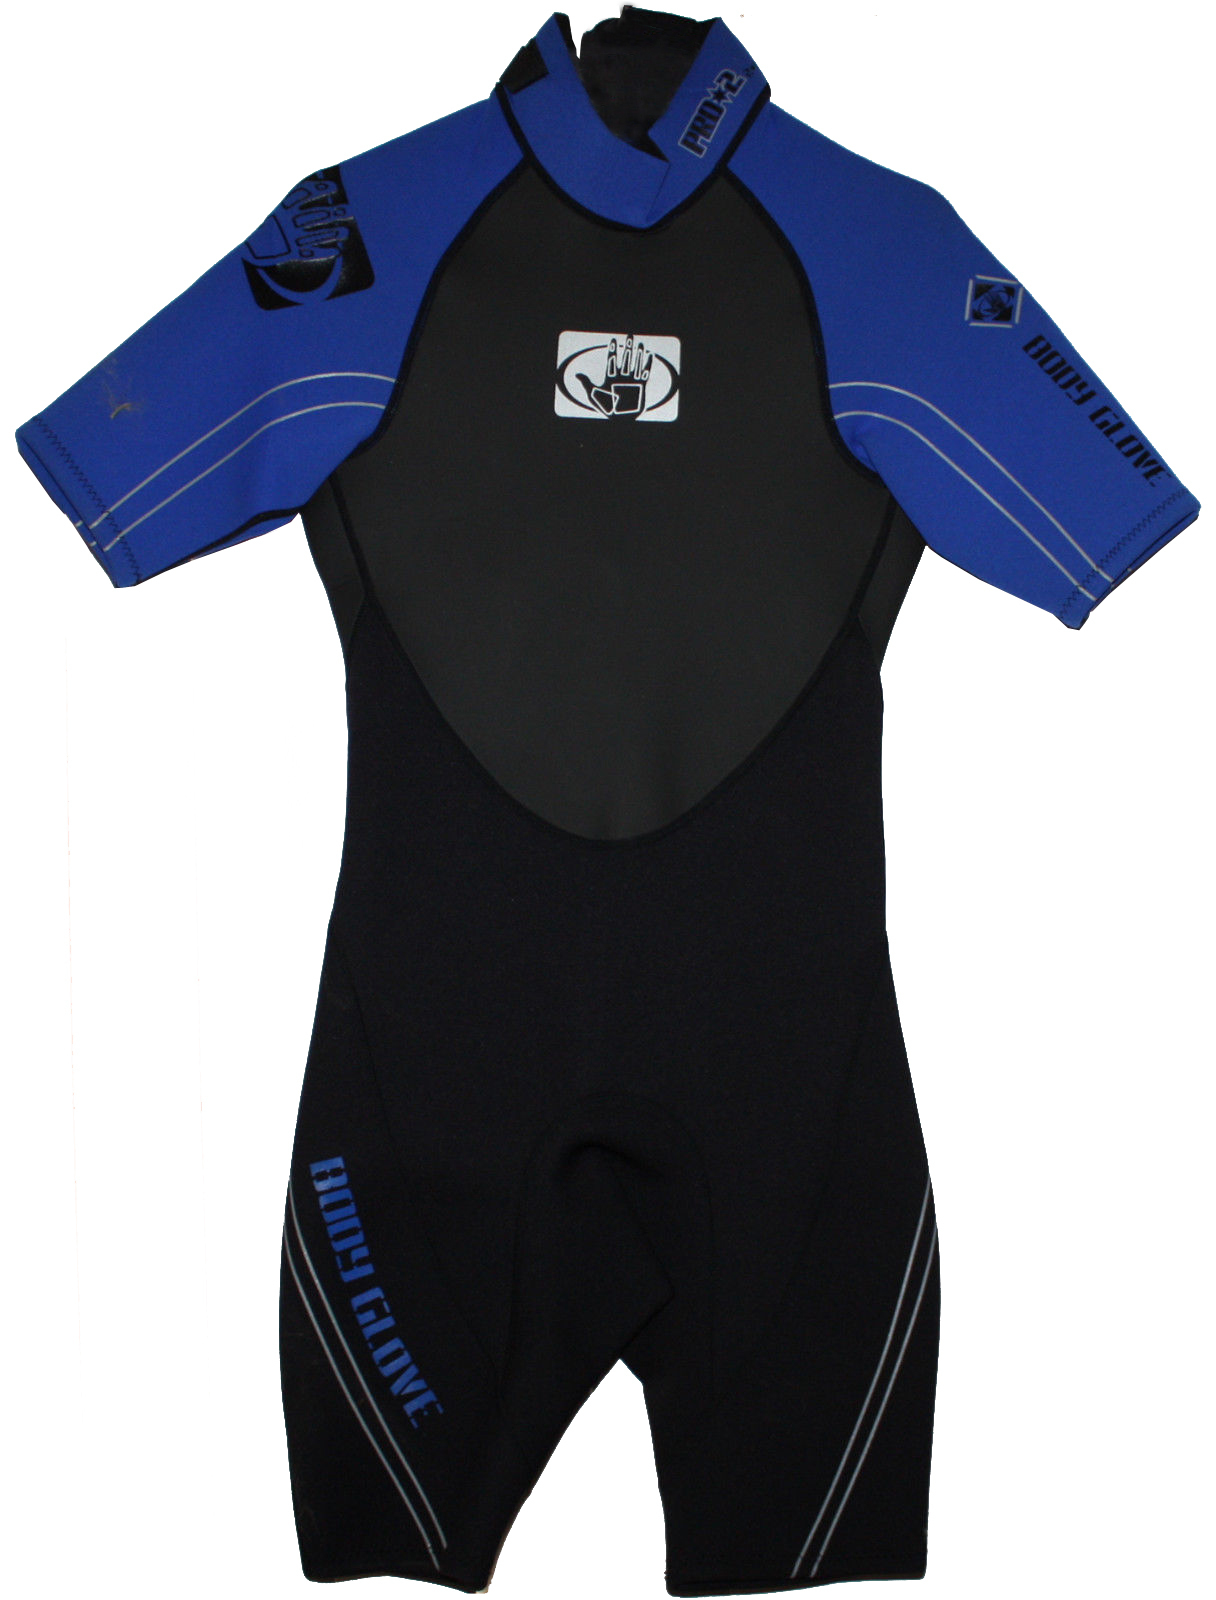 Body Glove Men's PRO 2 Blue/Black/Gray 2/1 mm Shorty Springsuit Wetsuit (Small) 13067